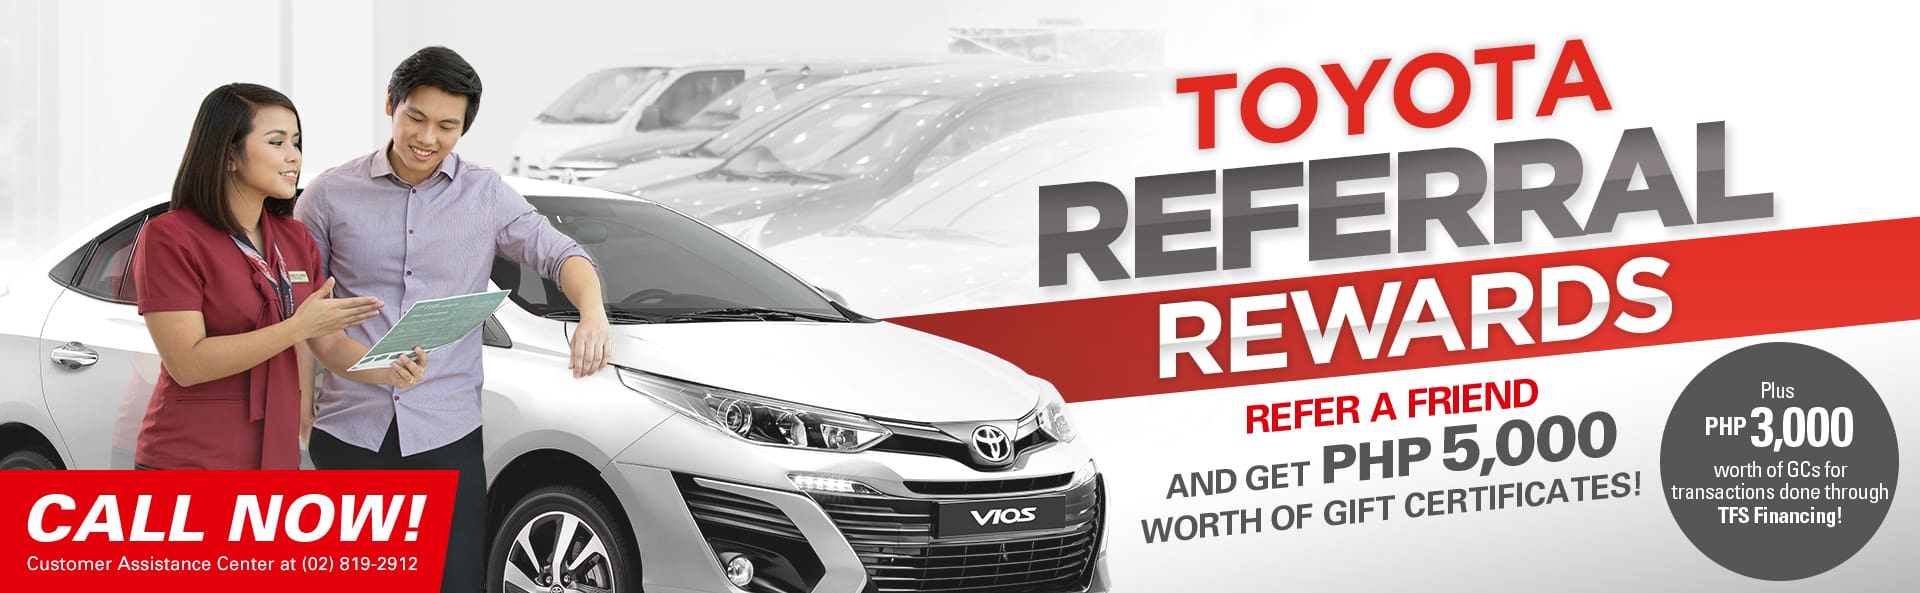 Got a Toyota? Get a Friend to Buy a Toyota Vios and Get Rewarded!